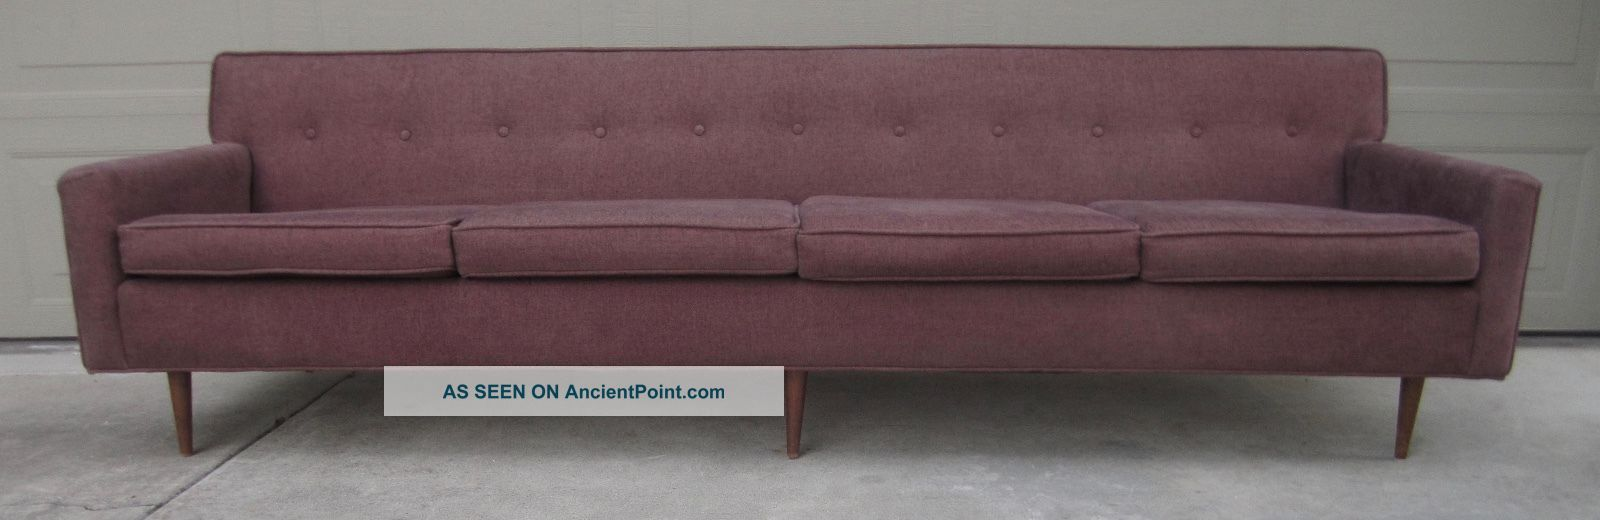 Vintage Milo Baughman Paul Mccobb Martin Borenstein (?) Metropolitan 8 ' Sofa Post-1950 photo